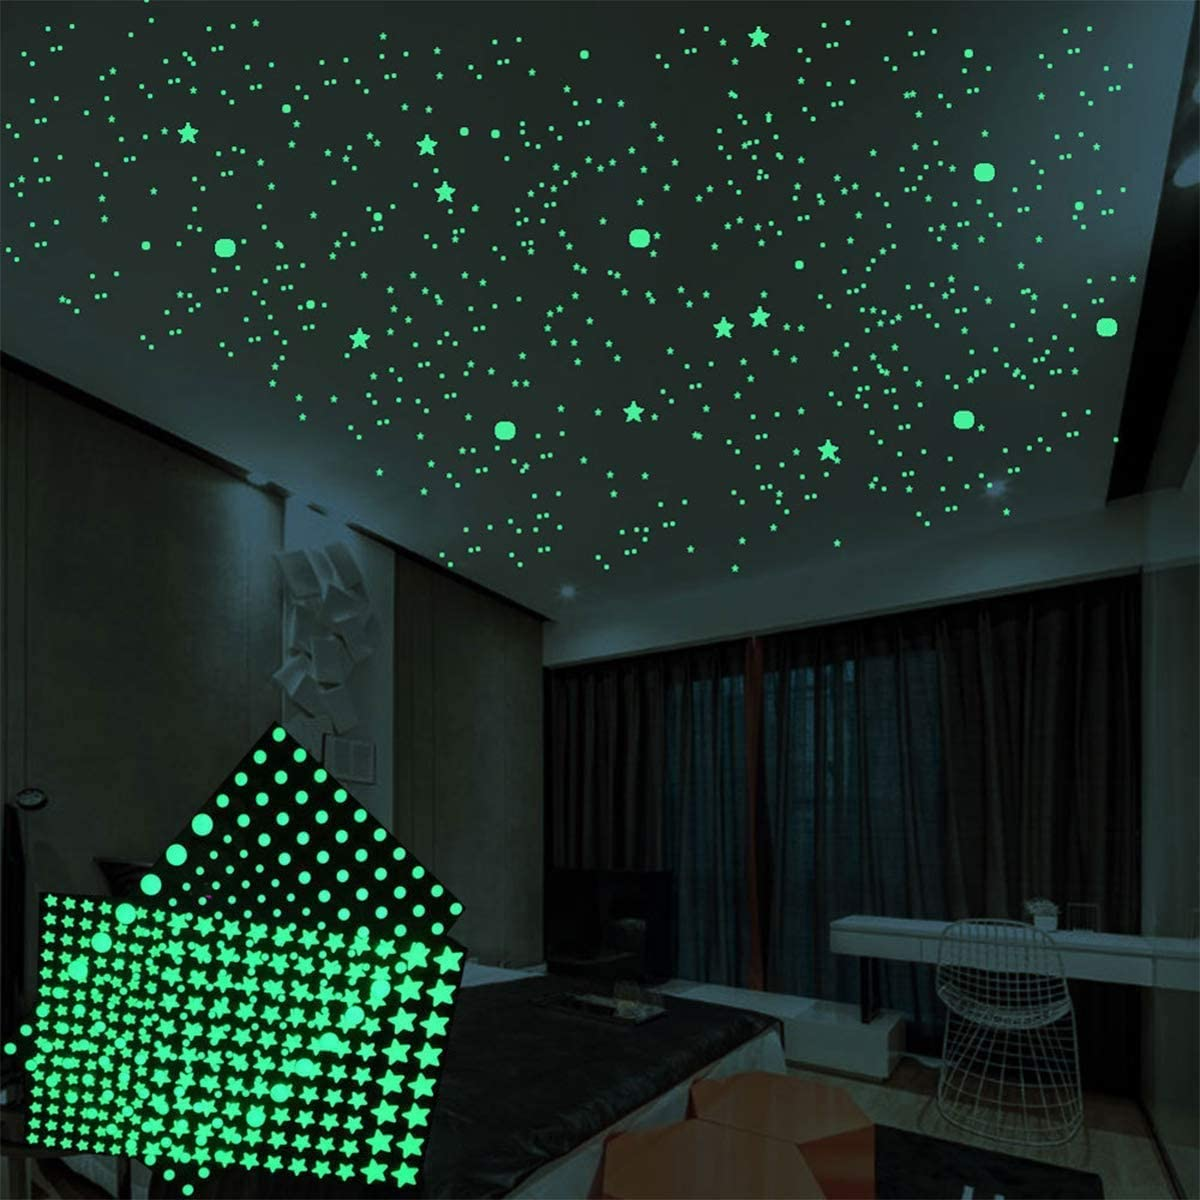 Realistic 3D Domed Glow in The Dark Stars, Glow in The Dark Stars for Ceiling or Wall Stickers .Perfect for Kids Bedding Room Gift (860PCS)